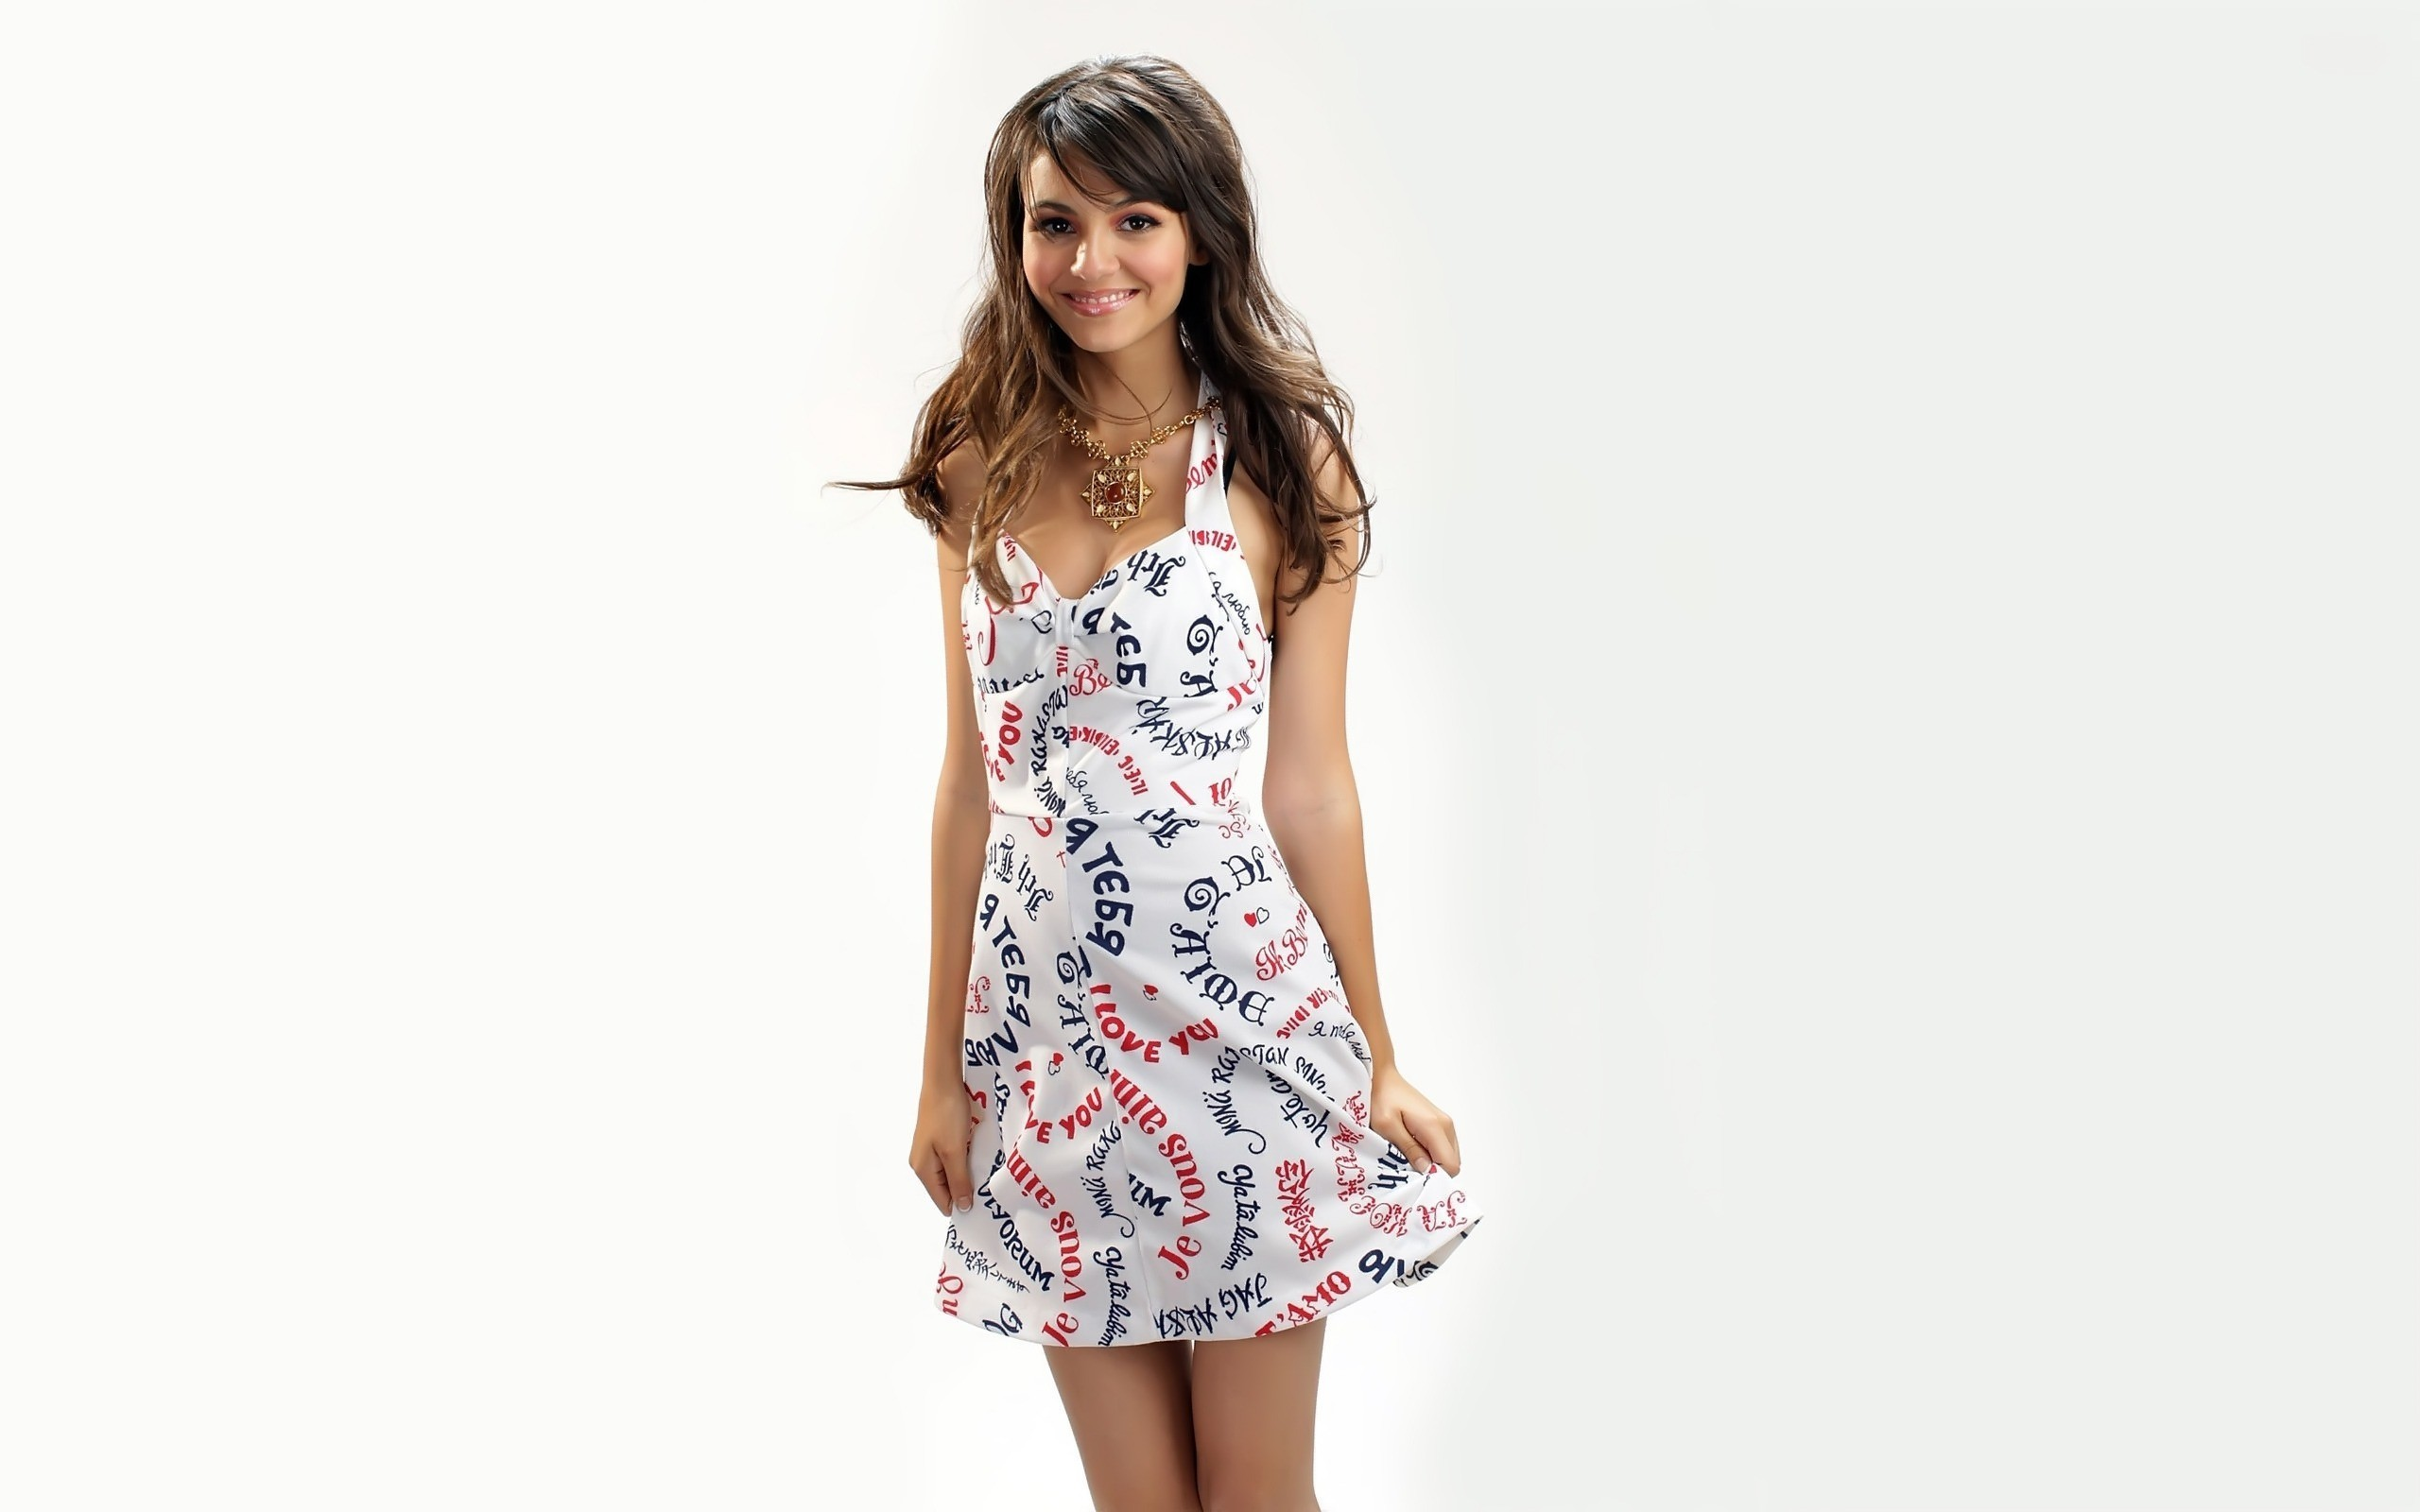 woman dress white background victoria justice HD Wallpaper